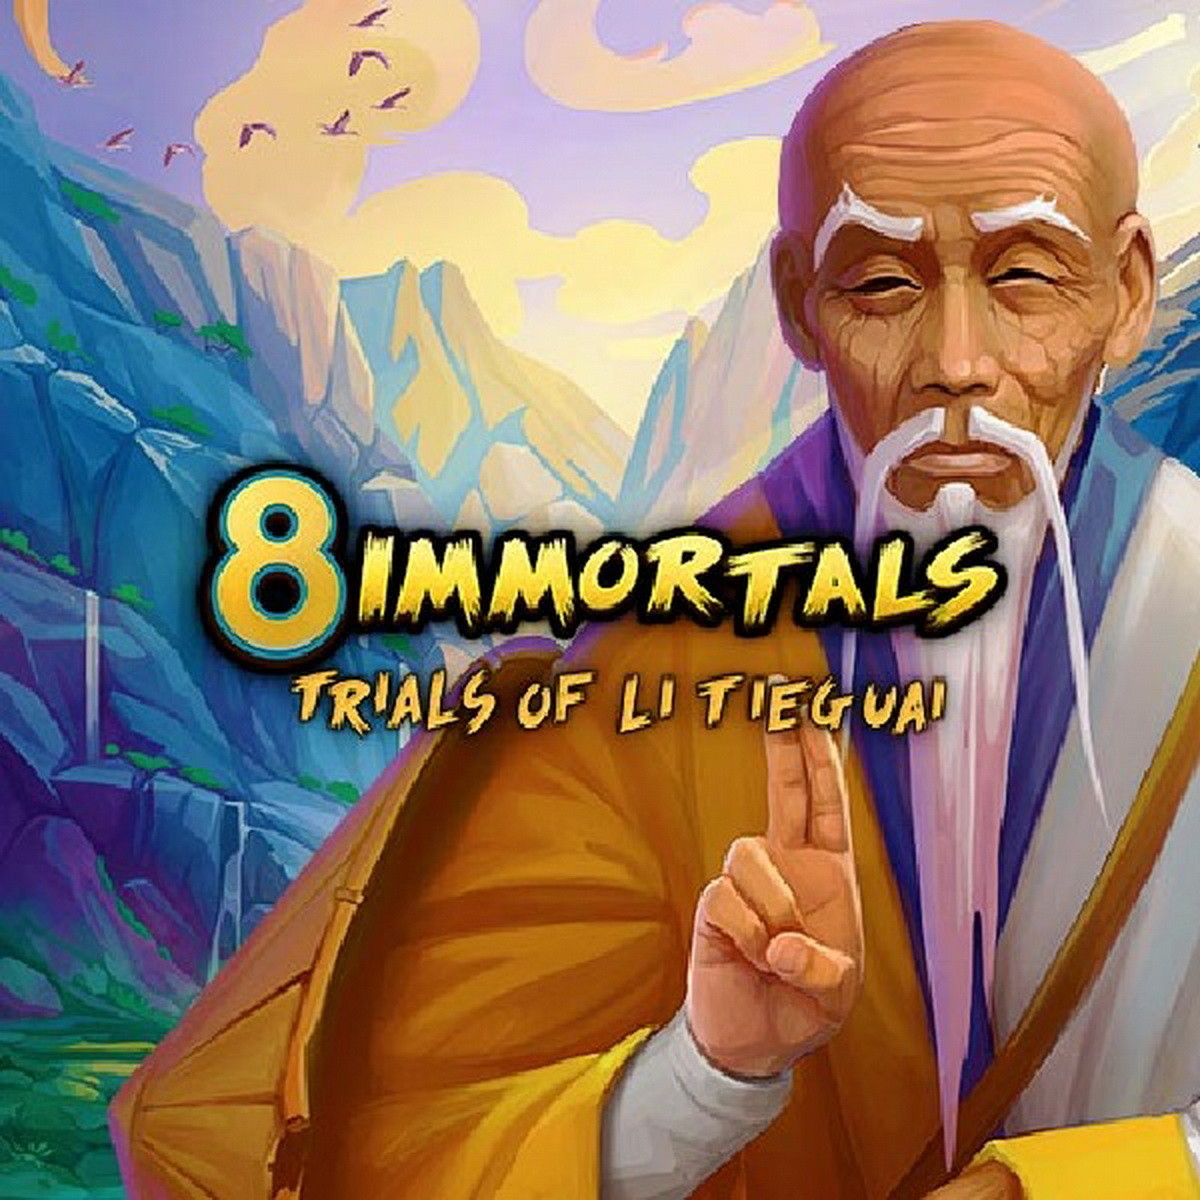 The 8 Immortals Trials of Li Tieguai Online Slot Demo Game by bet365 Software